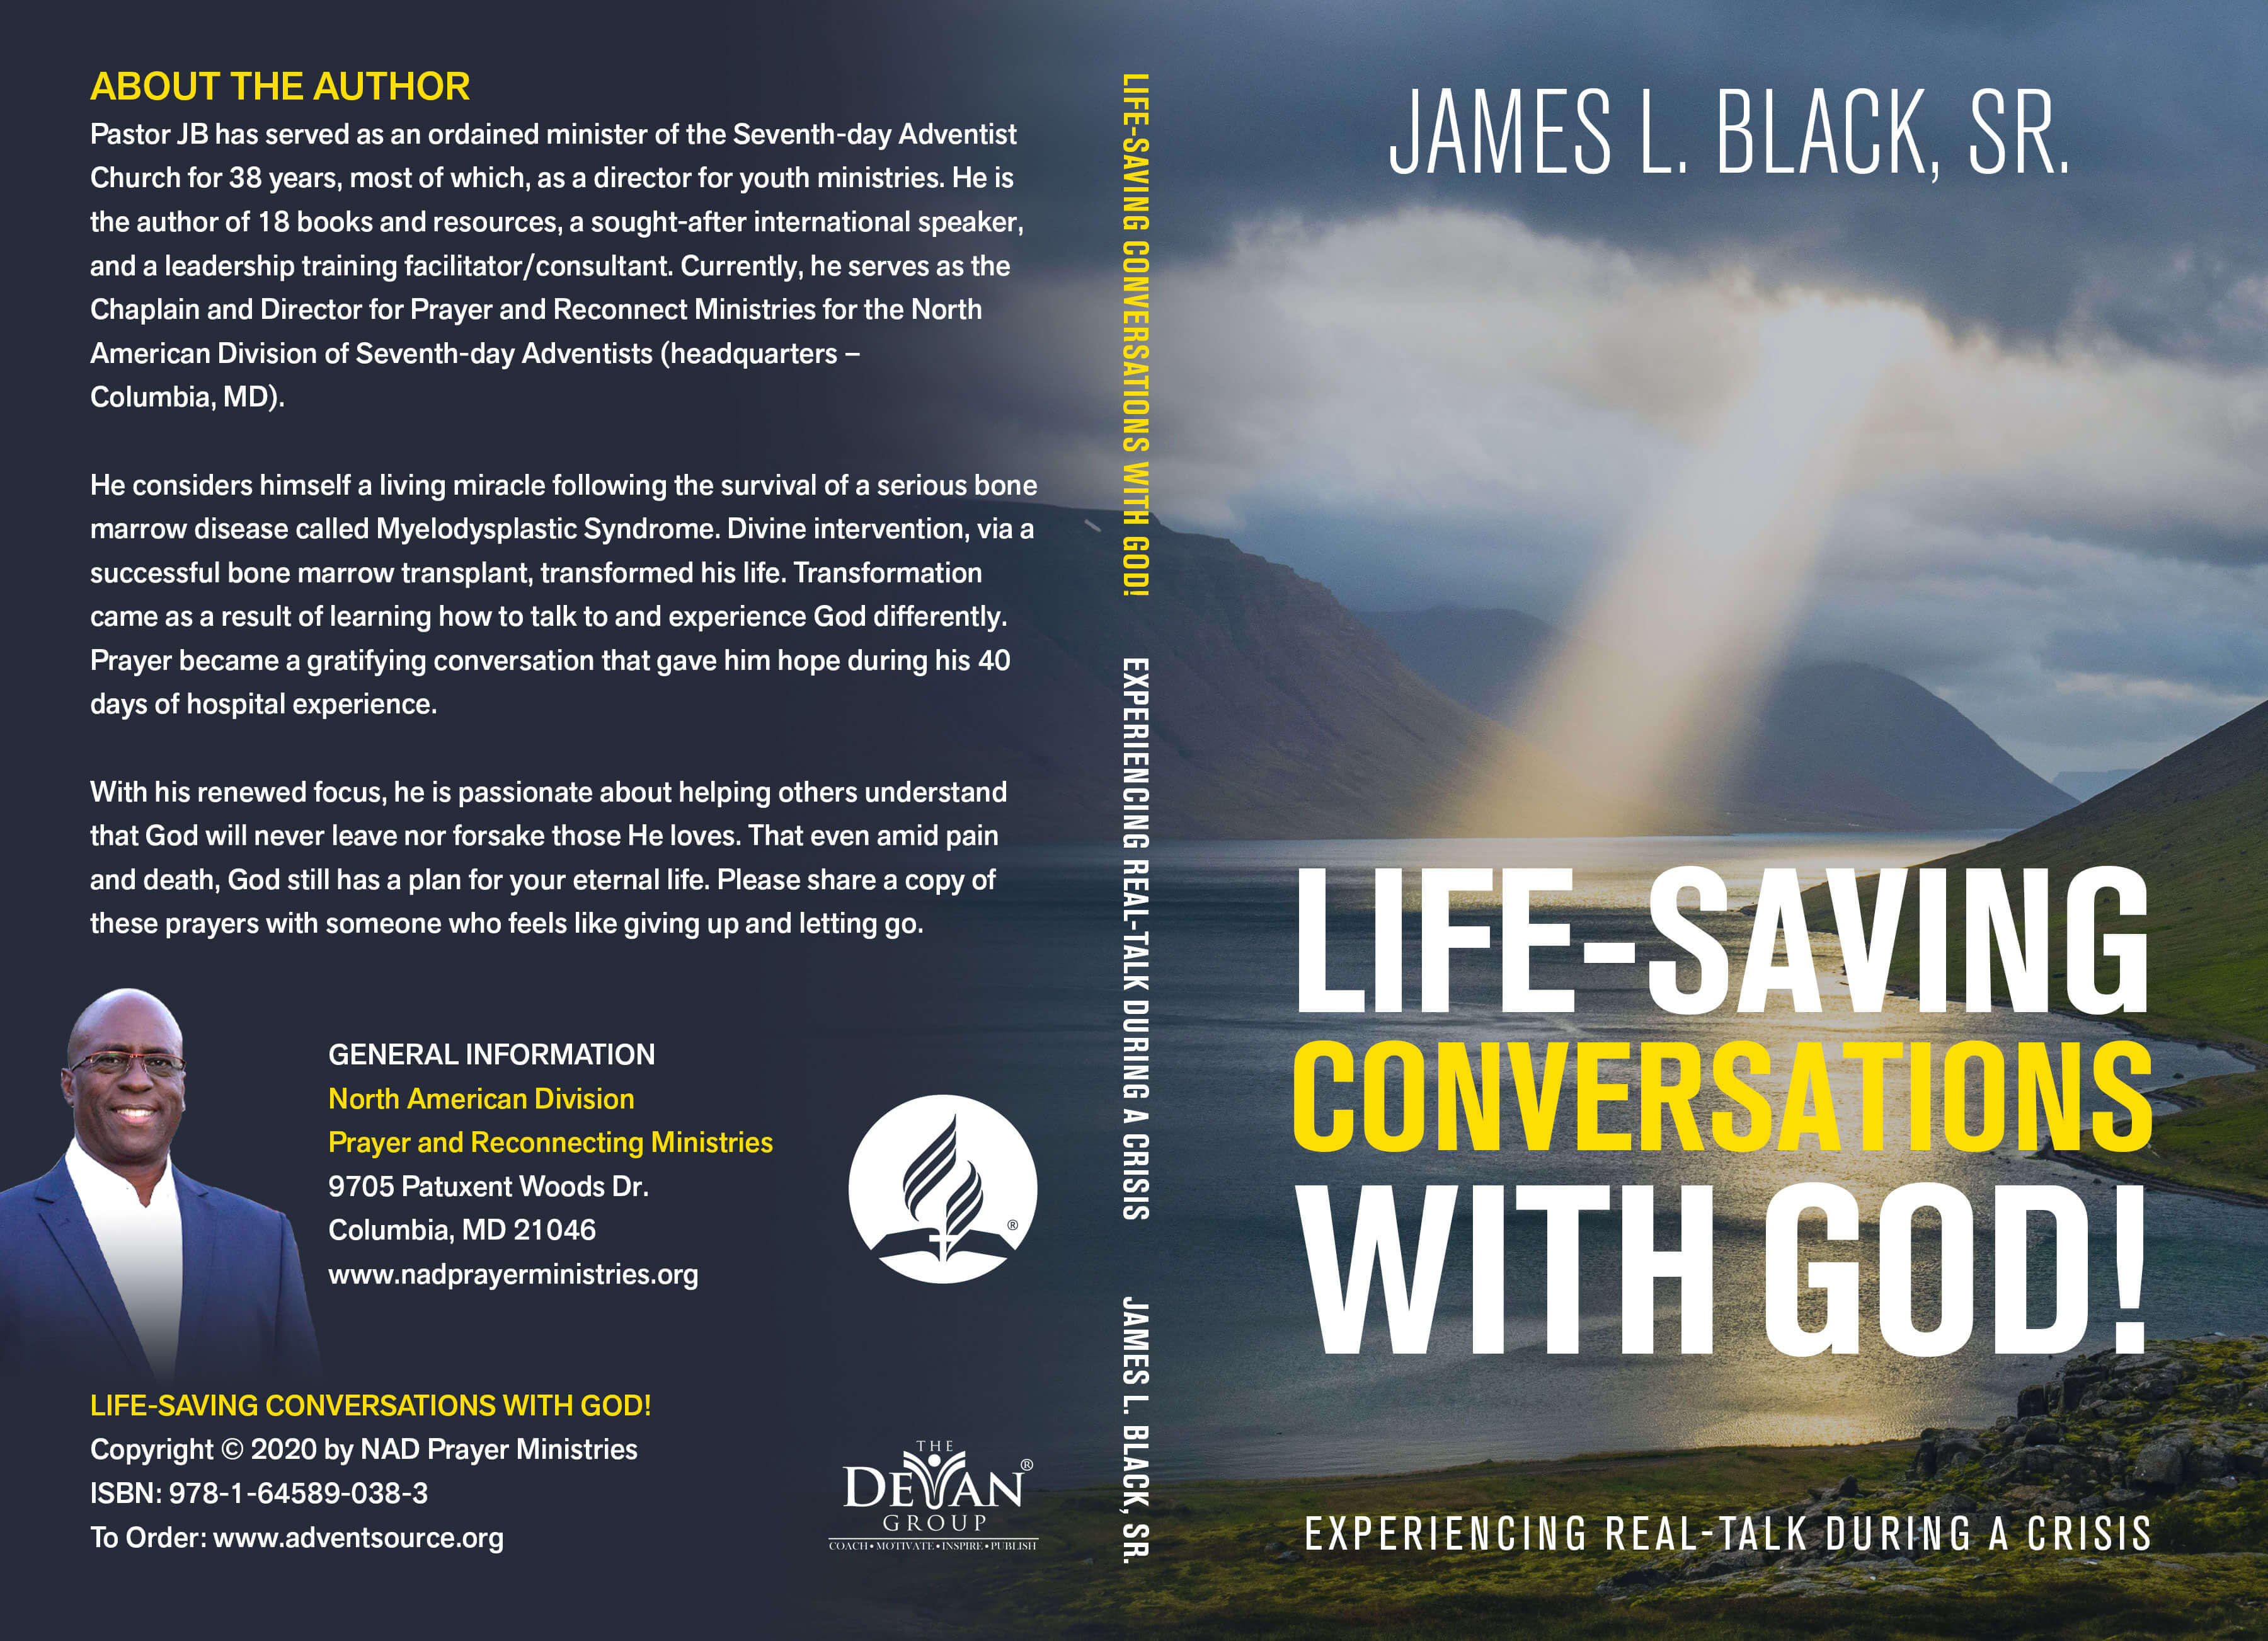 Life-Saving Conversations With God